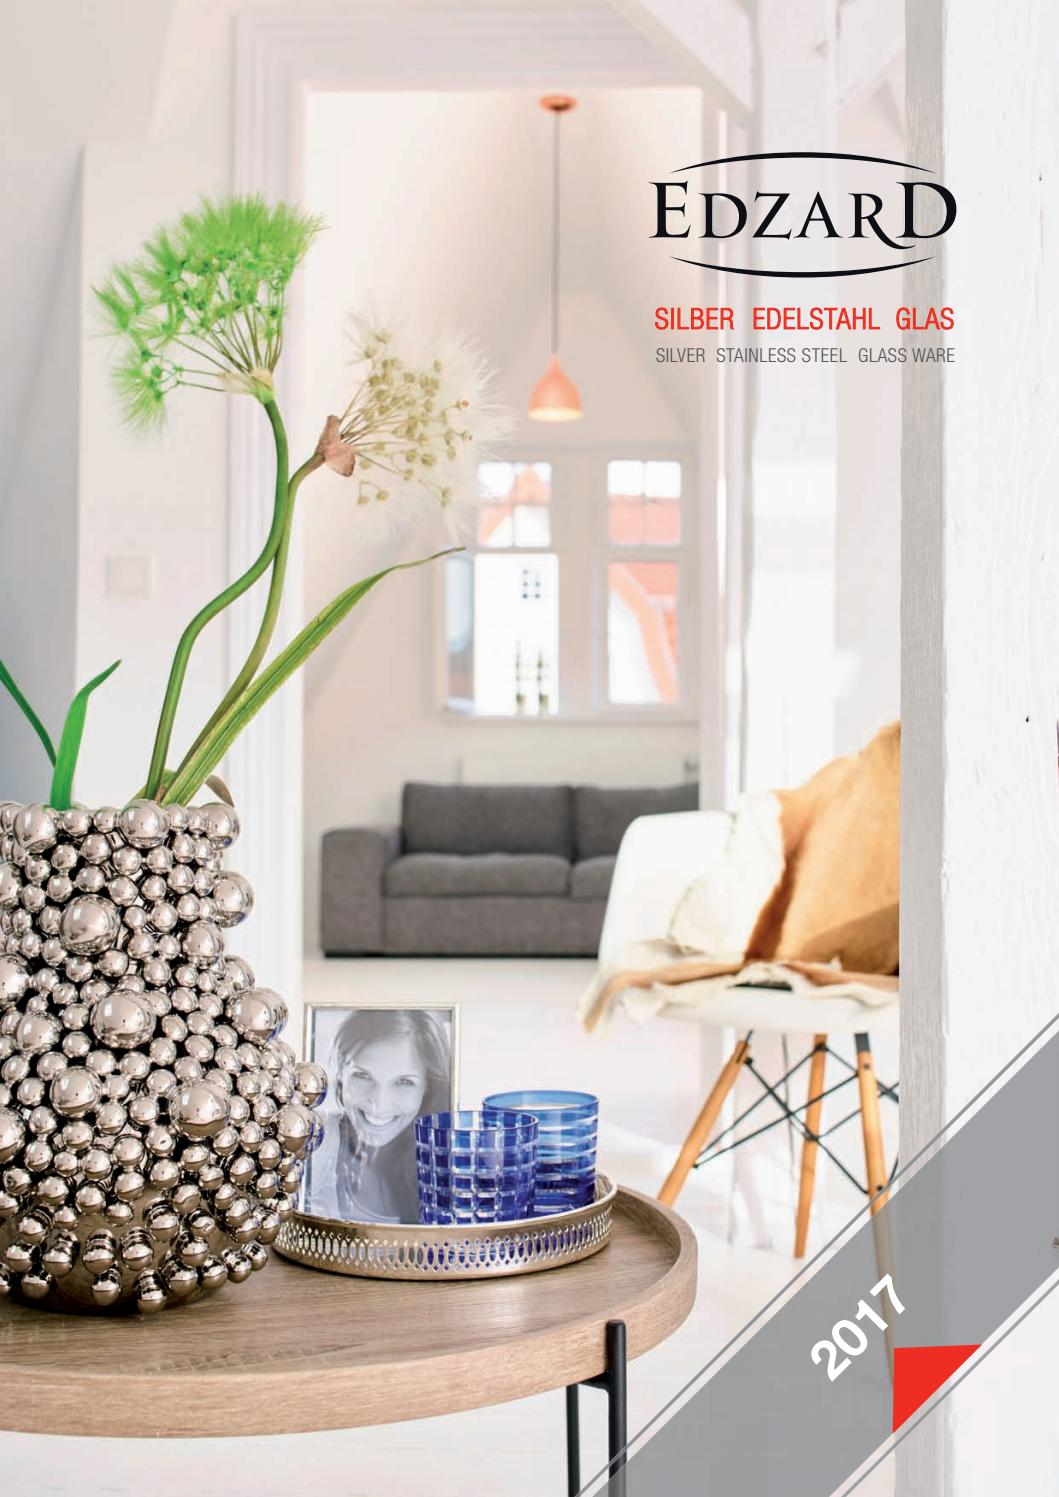 Edzard Katalog Catalogue 2017 By Edzard Issuu